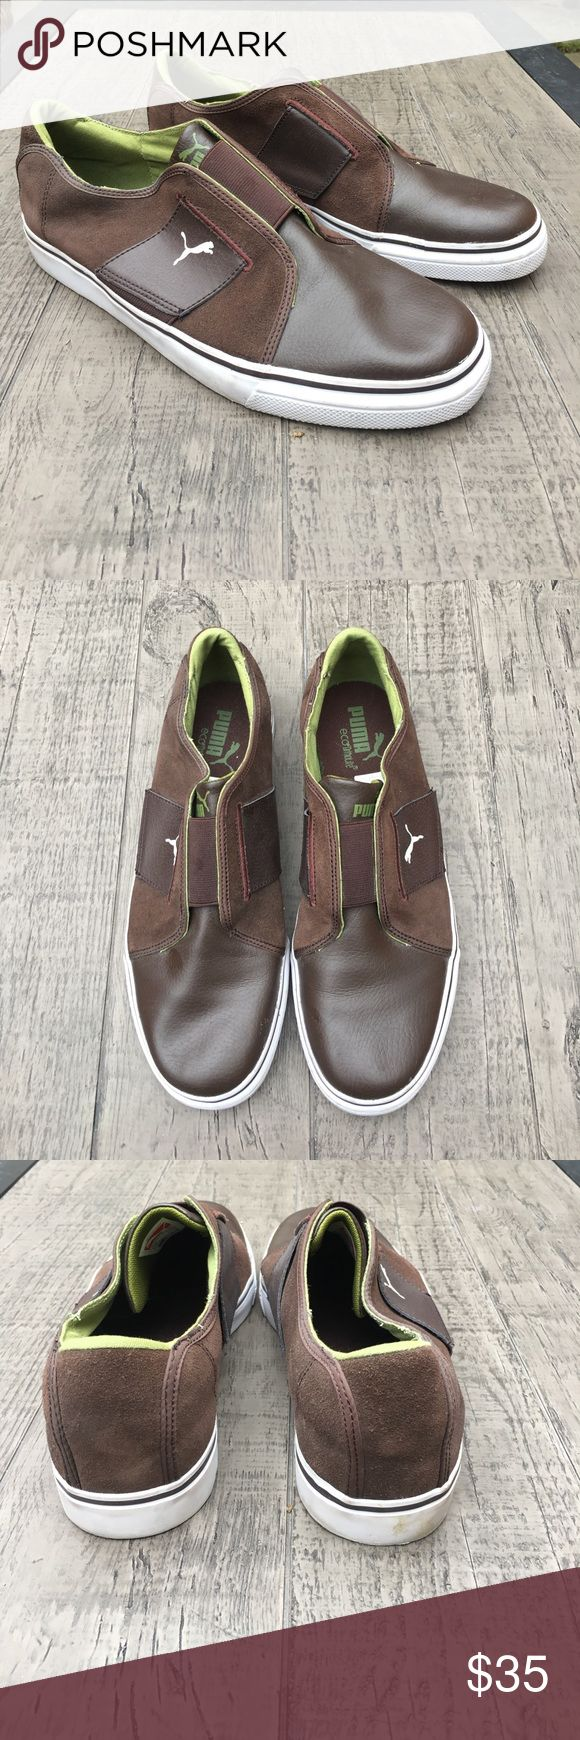 MENS Puma Brown Leather/Suede Sneakers MENS Puma Brown Leather/Suede Sneakers.  Eco Ortholite slip on sneaker with green interior. Barely worn. Size10 1/2 Puma Shoes Sneakers